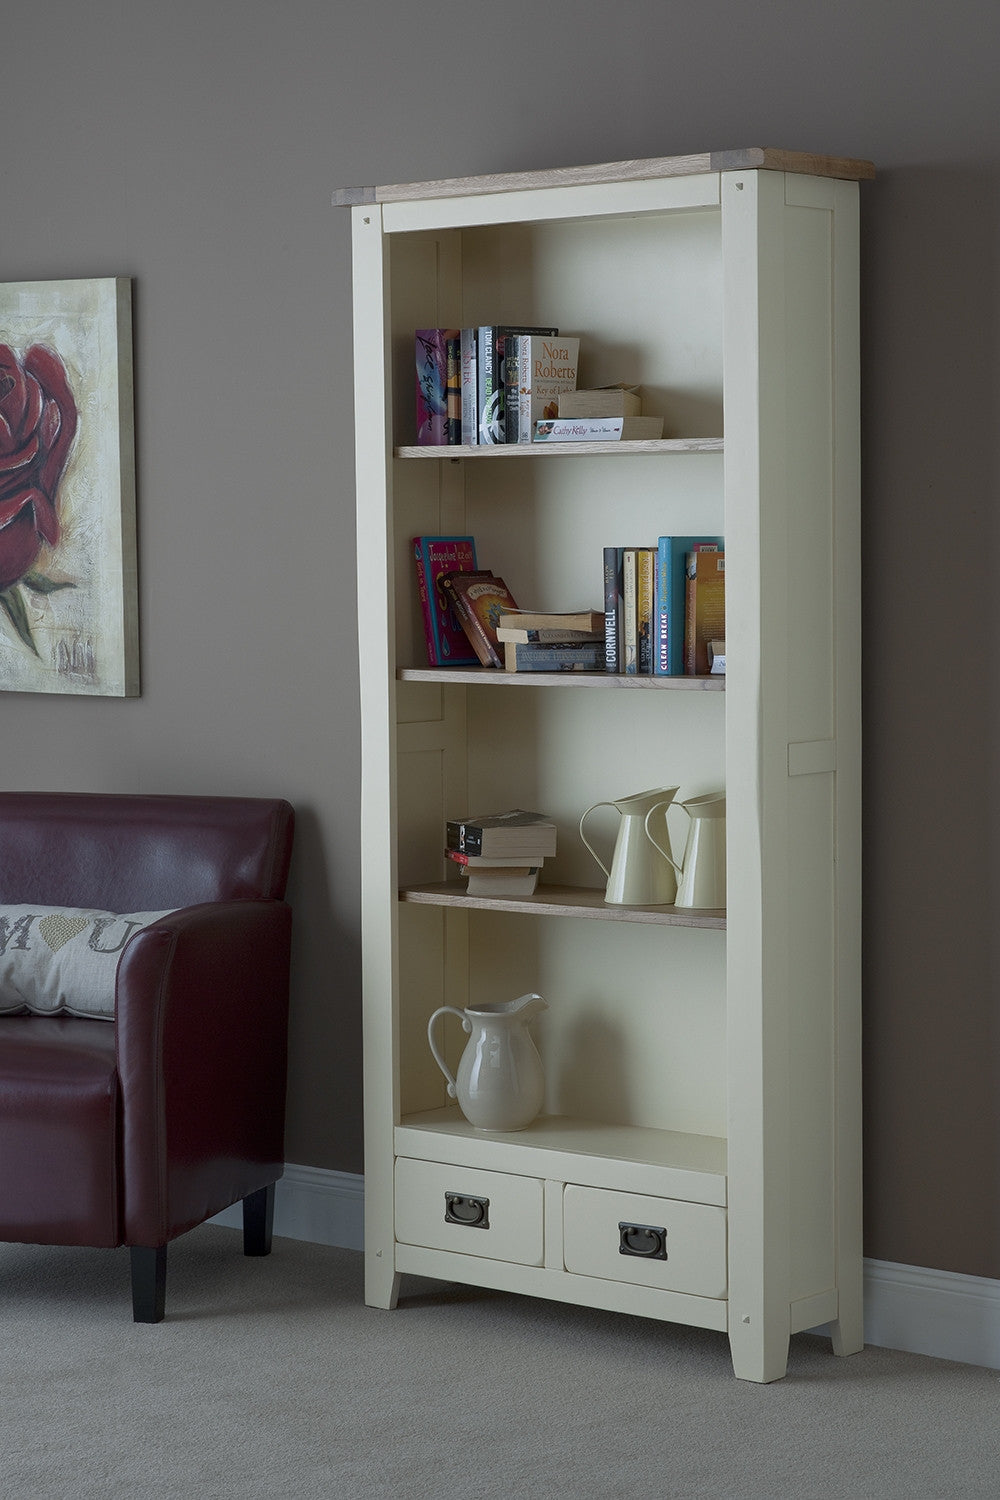 Panama Bookcase - Property Letting Furniture